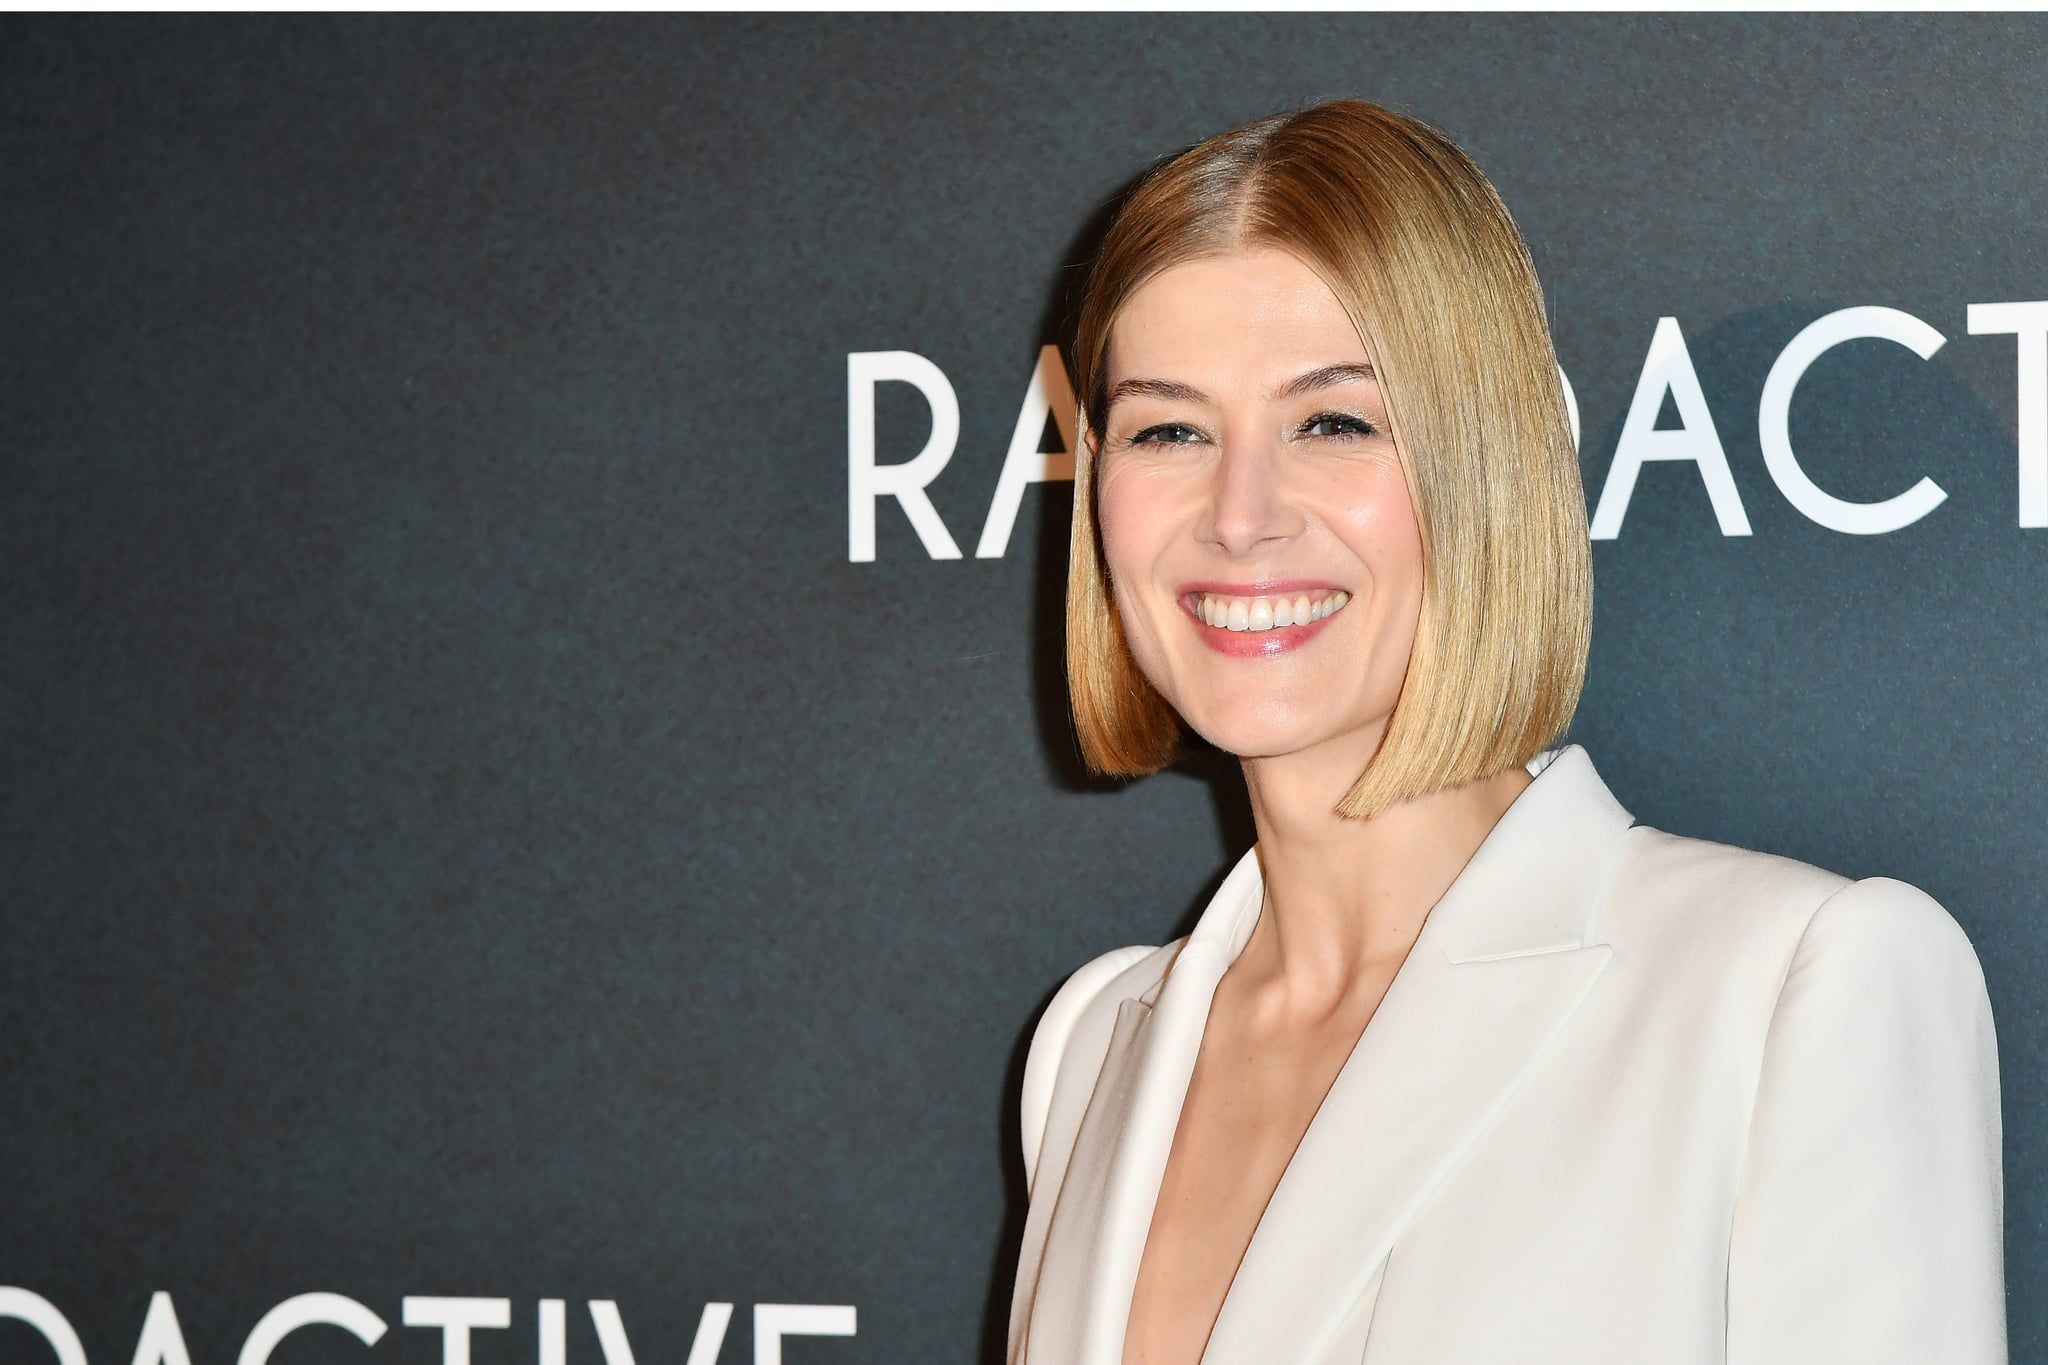 PARIS, FRANCE - FEBRUARY 24: Rosamund Pike attends the